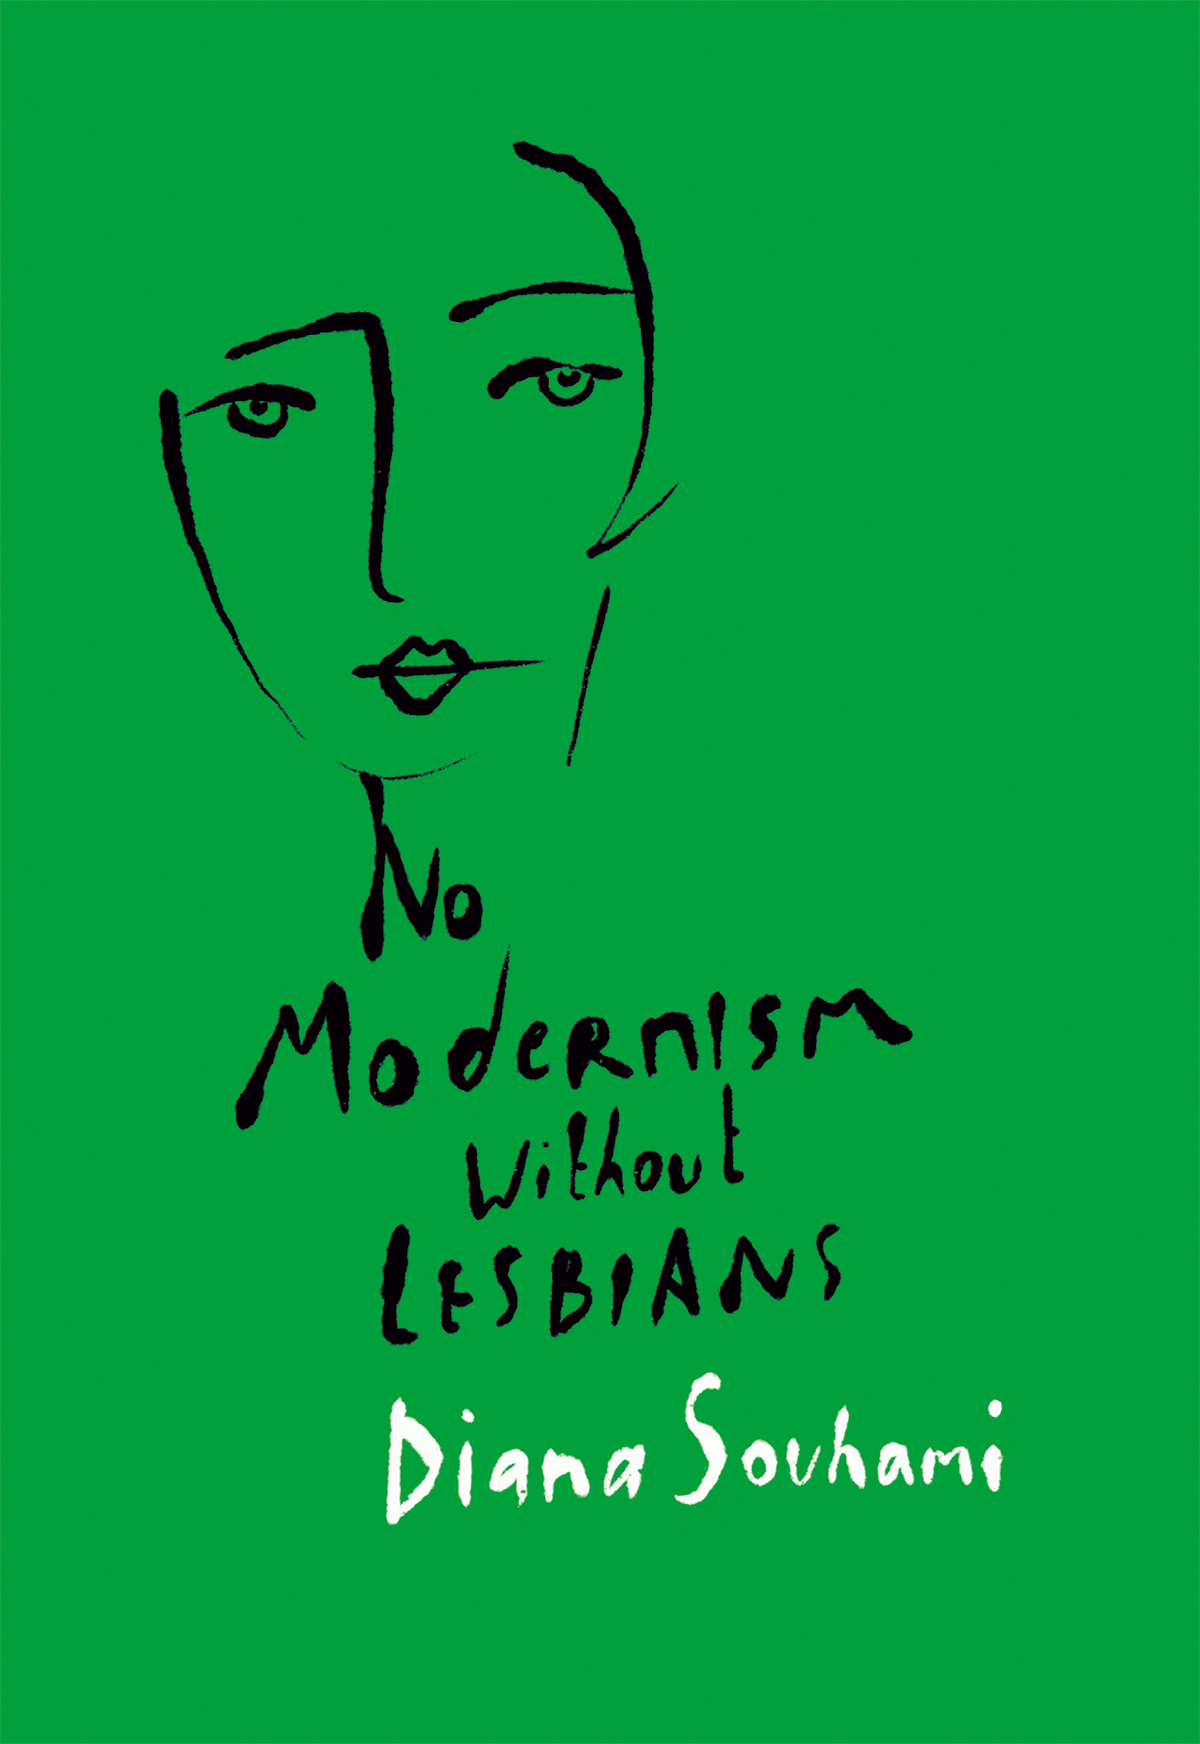 'No Modernism without Lesbians' by Diana Souhami